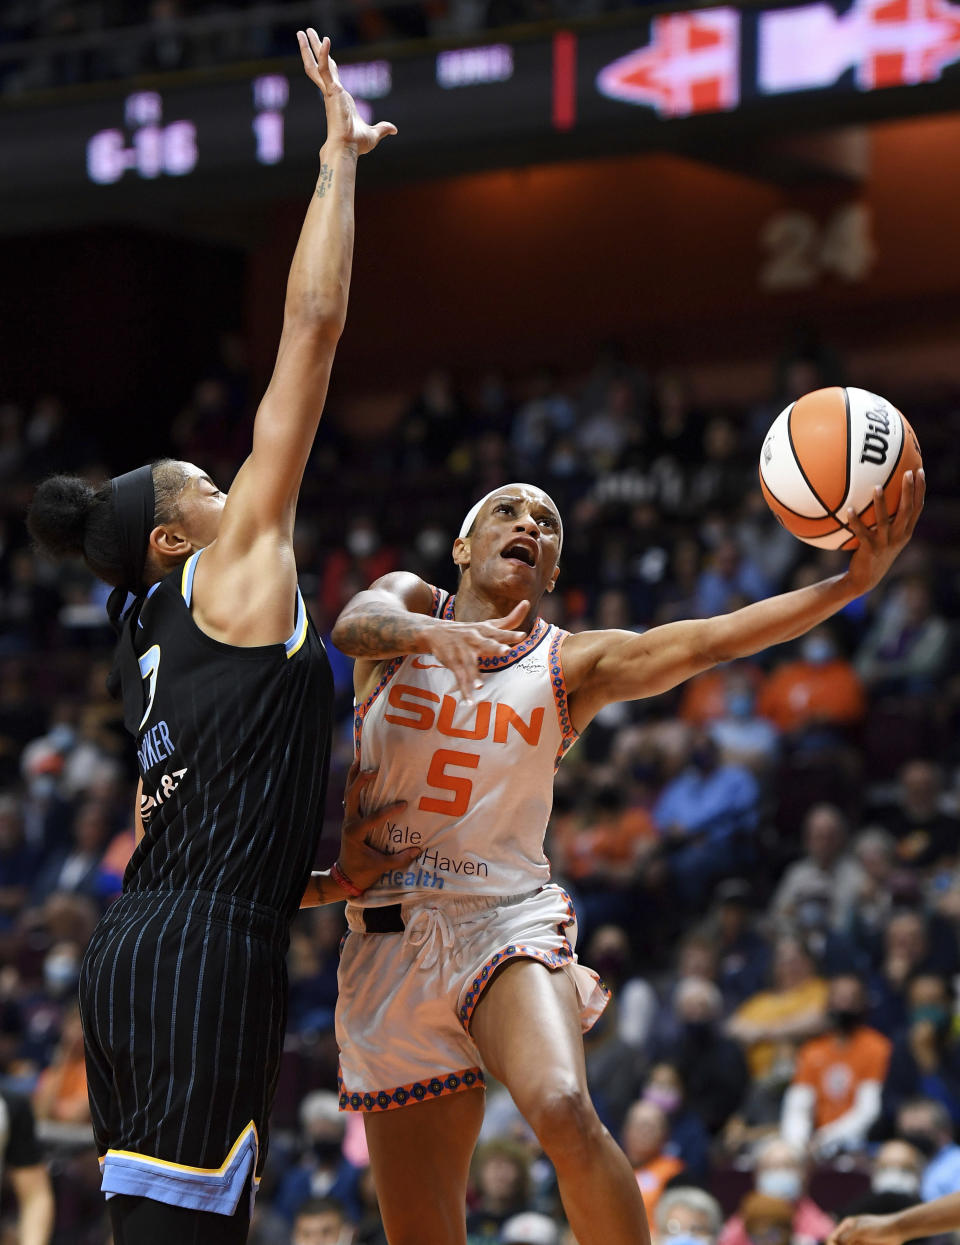 Connecticut Sun guard Jasmine Thomas puts up a shot as Chicago Sky Candace Parker defends during a WNBA semifinal playoff basketball game, Tuesday, Sept. 28, 2021, at Mohegan Sun Arena in Uncasville, Conn. (Sean D. Elliot/The Day via AP)